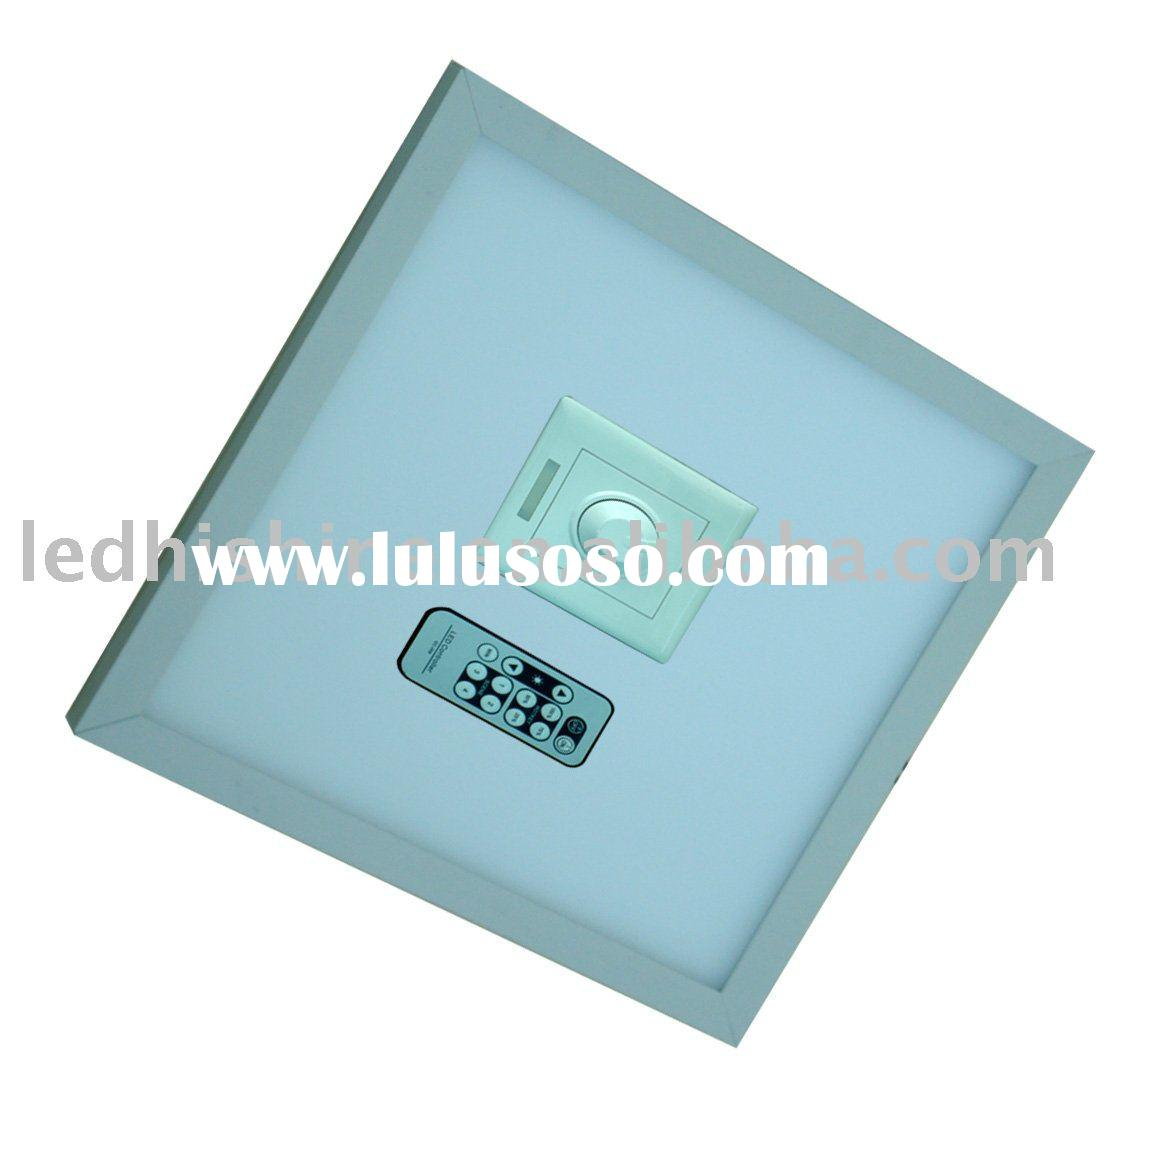 Dimmable LED recessed ceiling light